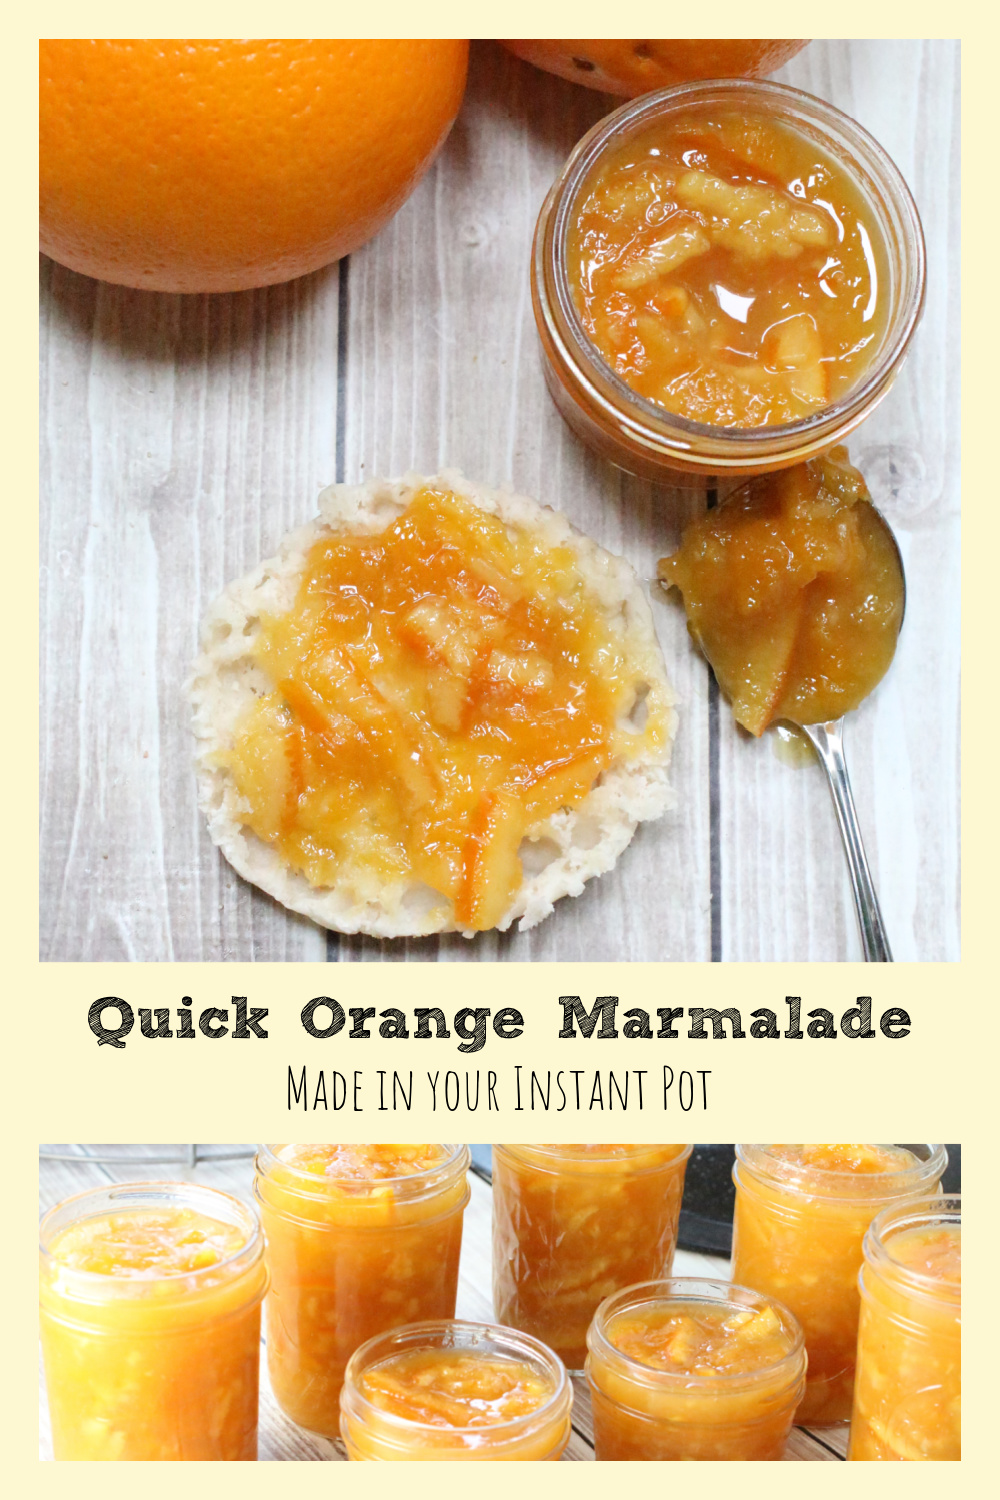 Easy Orange Marmalade Recipe made in a Pressure Cooker or Instant Pot